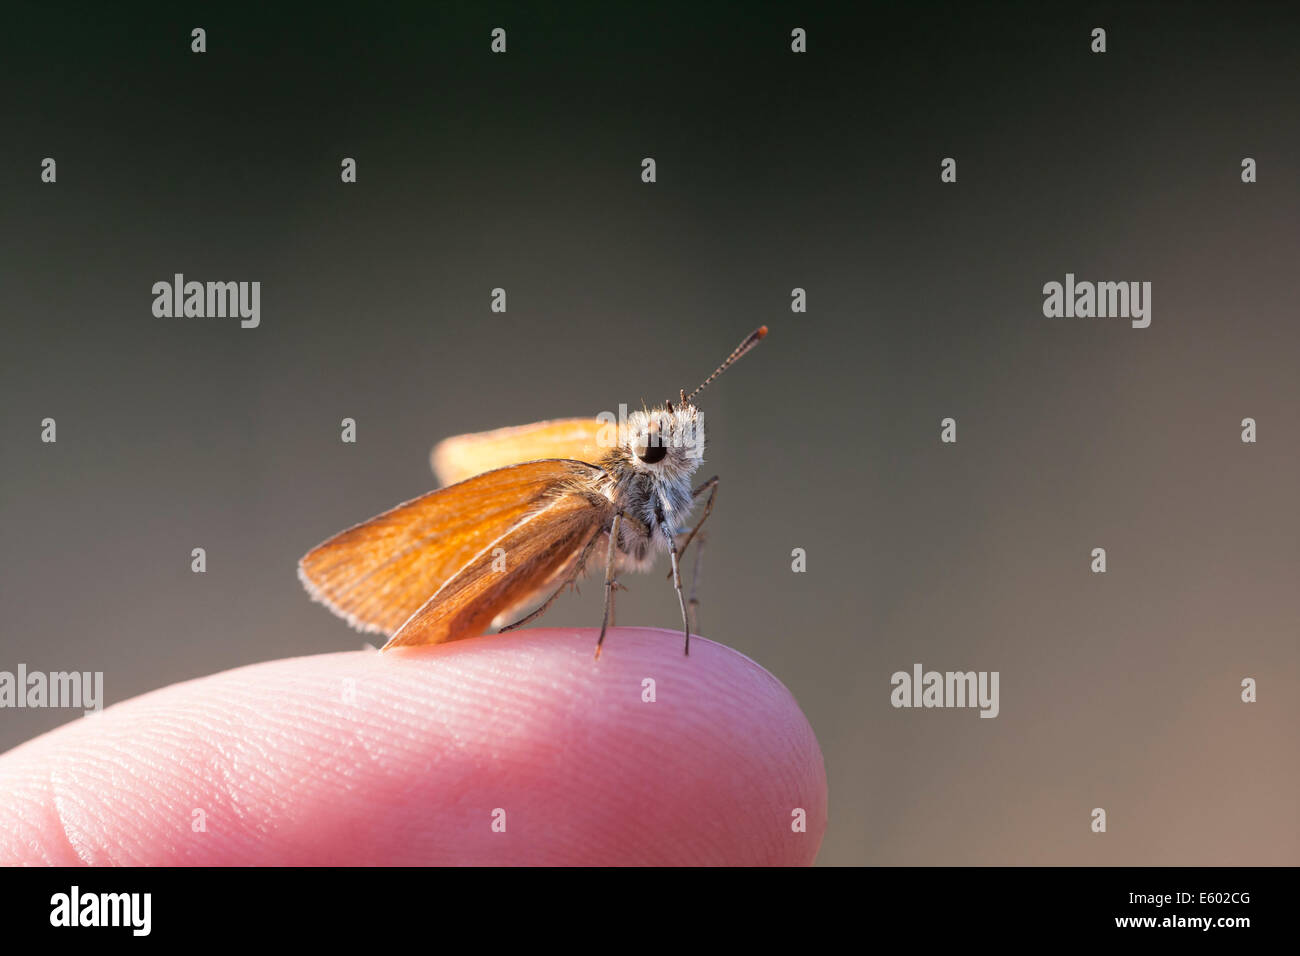 Little orange or brown butterfly on a human finger - Stock Image